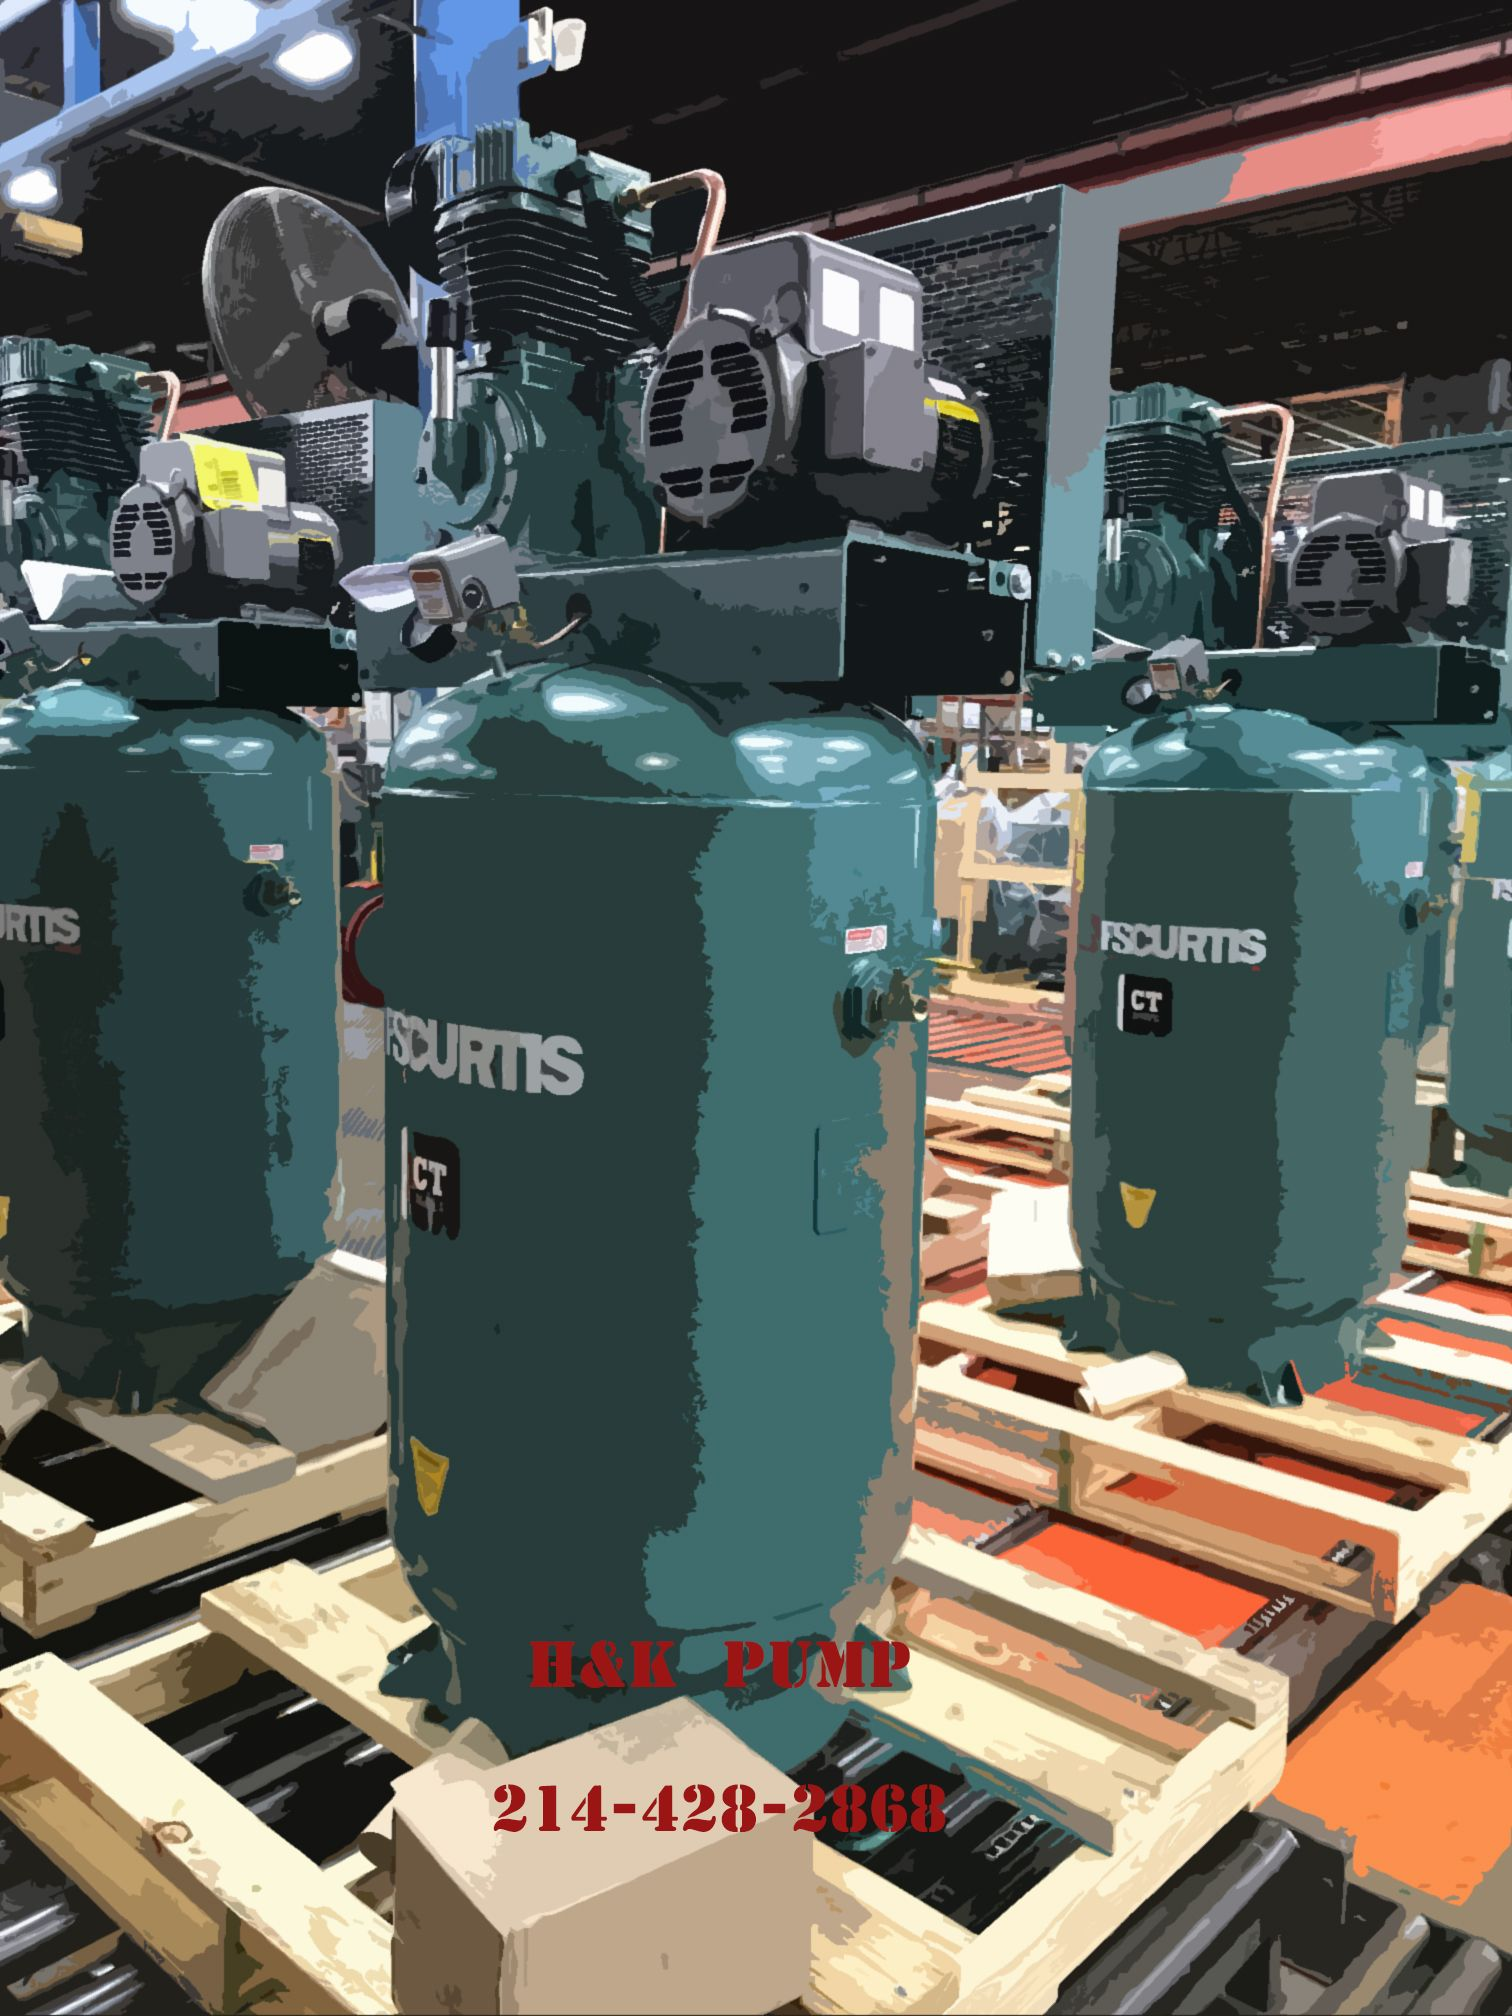 FSCurtis Compressors ready for service. Curtis is the